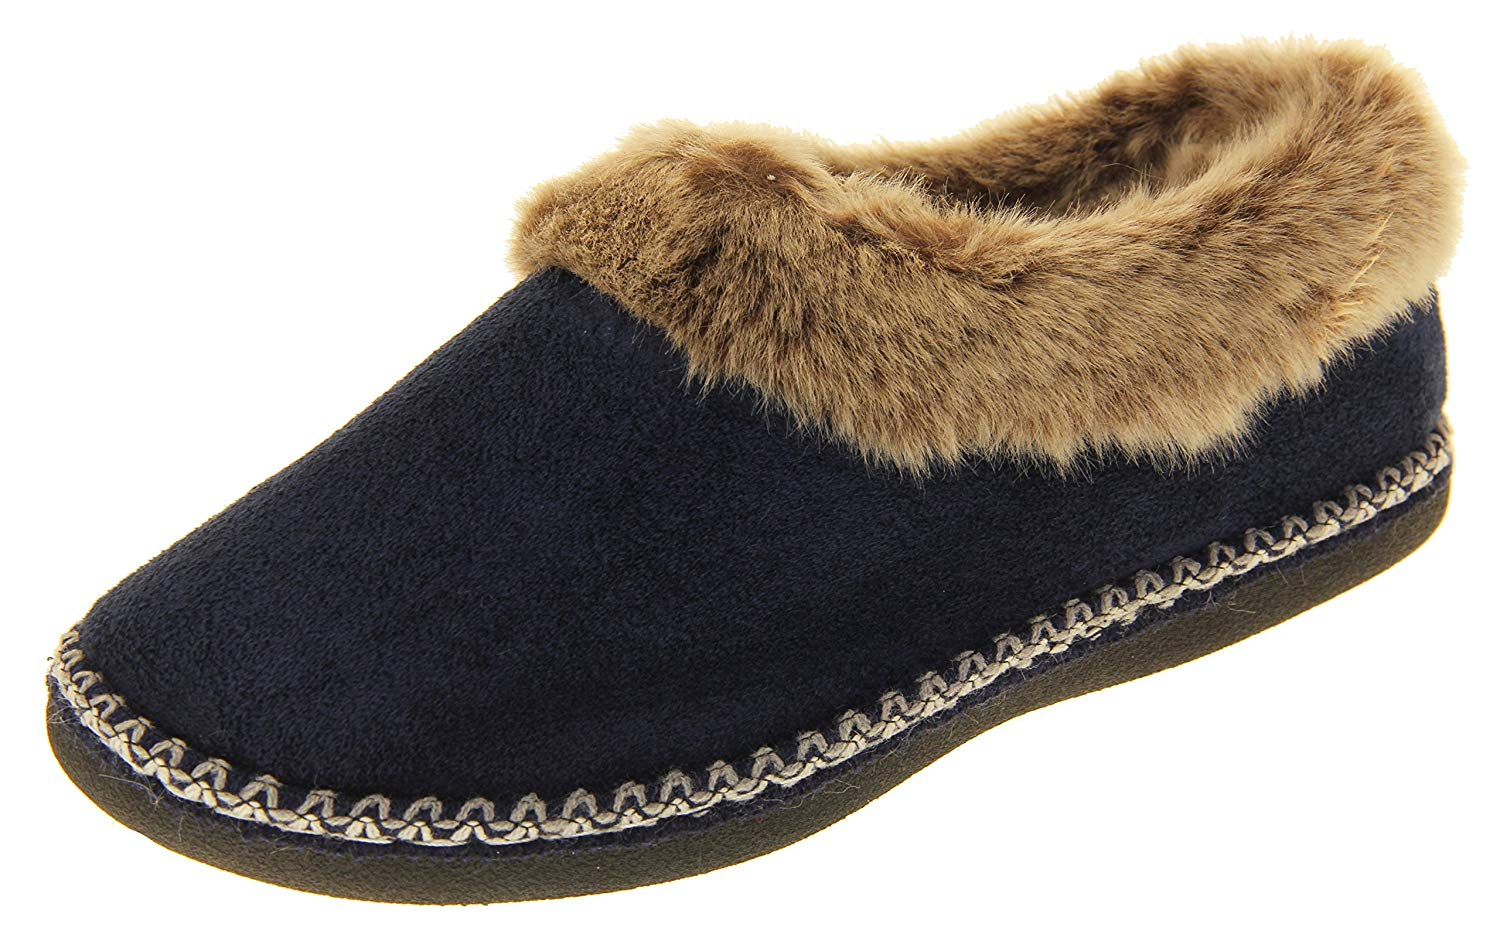 54fa608e4 Get Quotations · Coolers Womens Navy Blue Synthetic Fur Lined Slippers 8  B(M) US